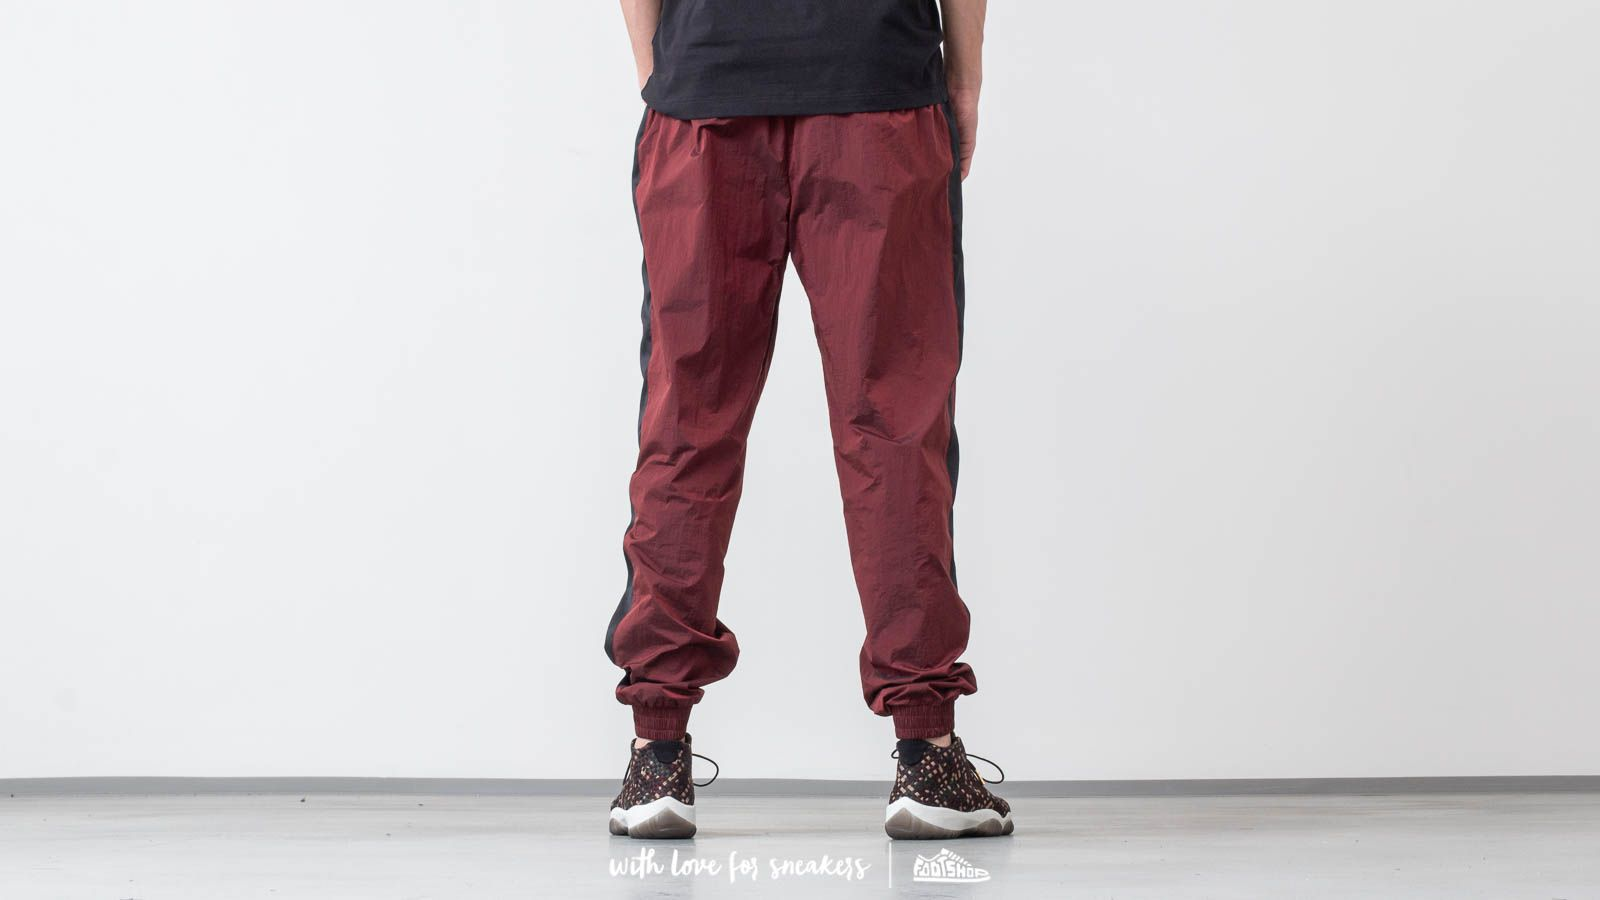 bf1854c459740 Jordan Flight Warm-Up Pants Gym Red  Black a prezzo eccezionale 88 €  acquistate